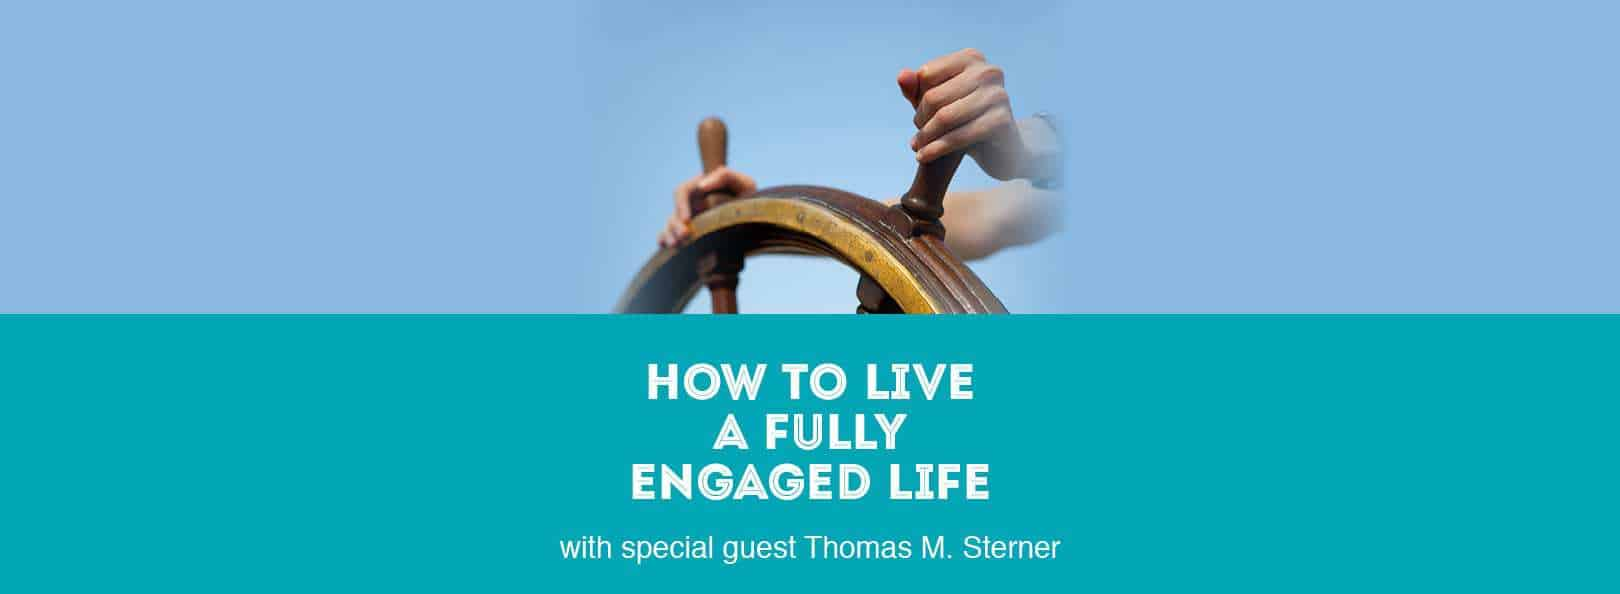 How to Live a Fully Engaged Life with Special Guest Thomas M. Sterner